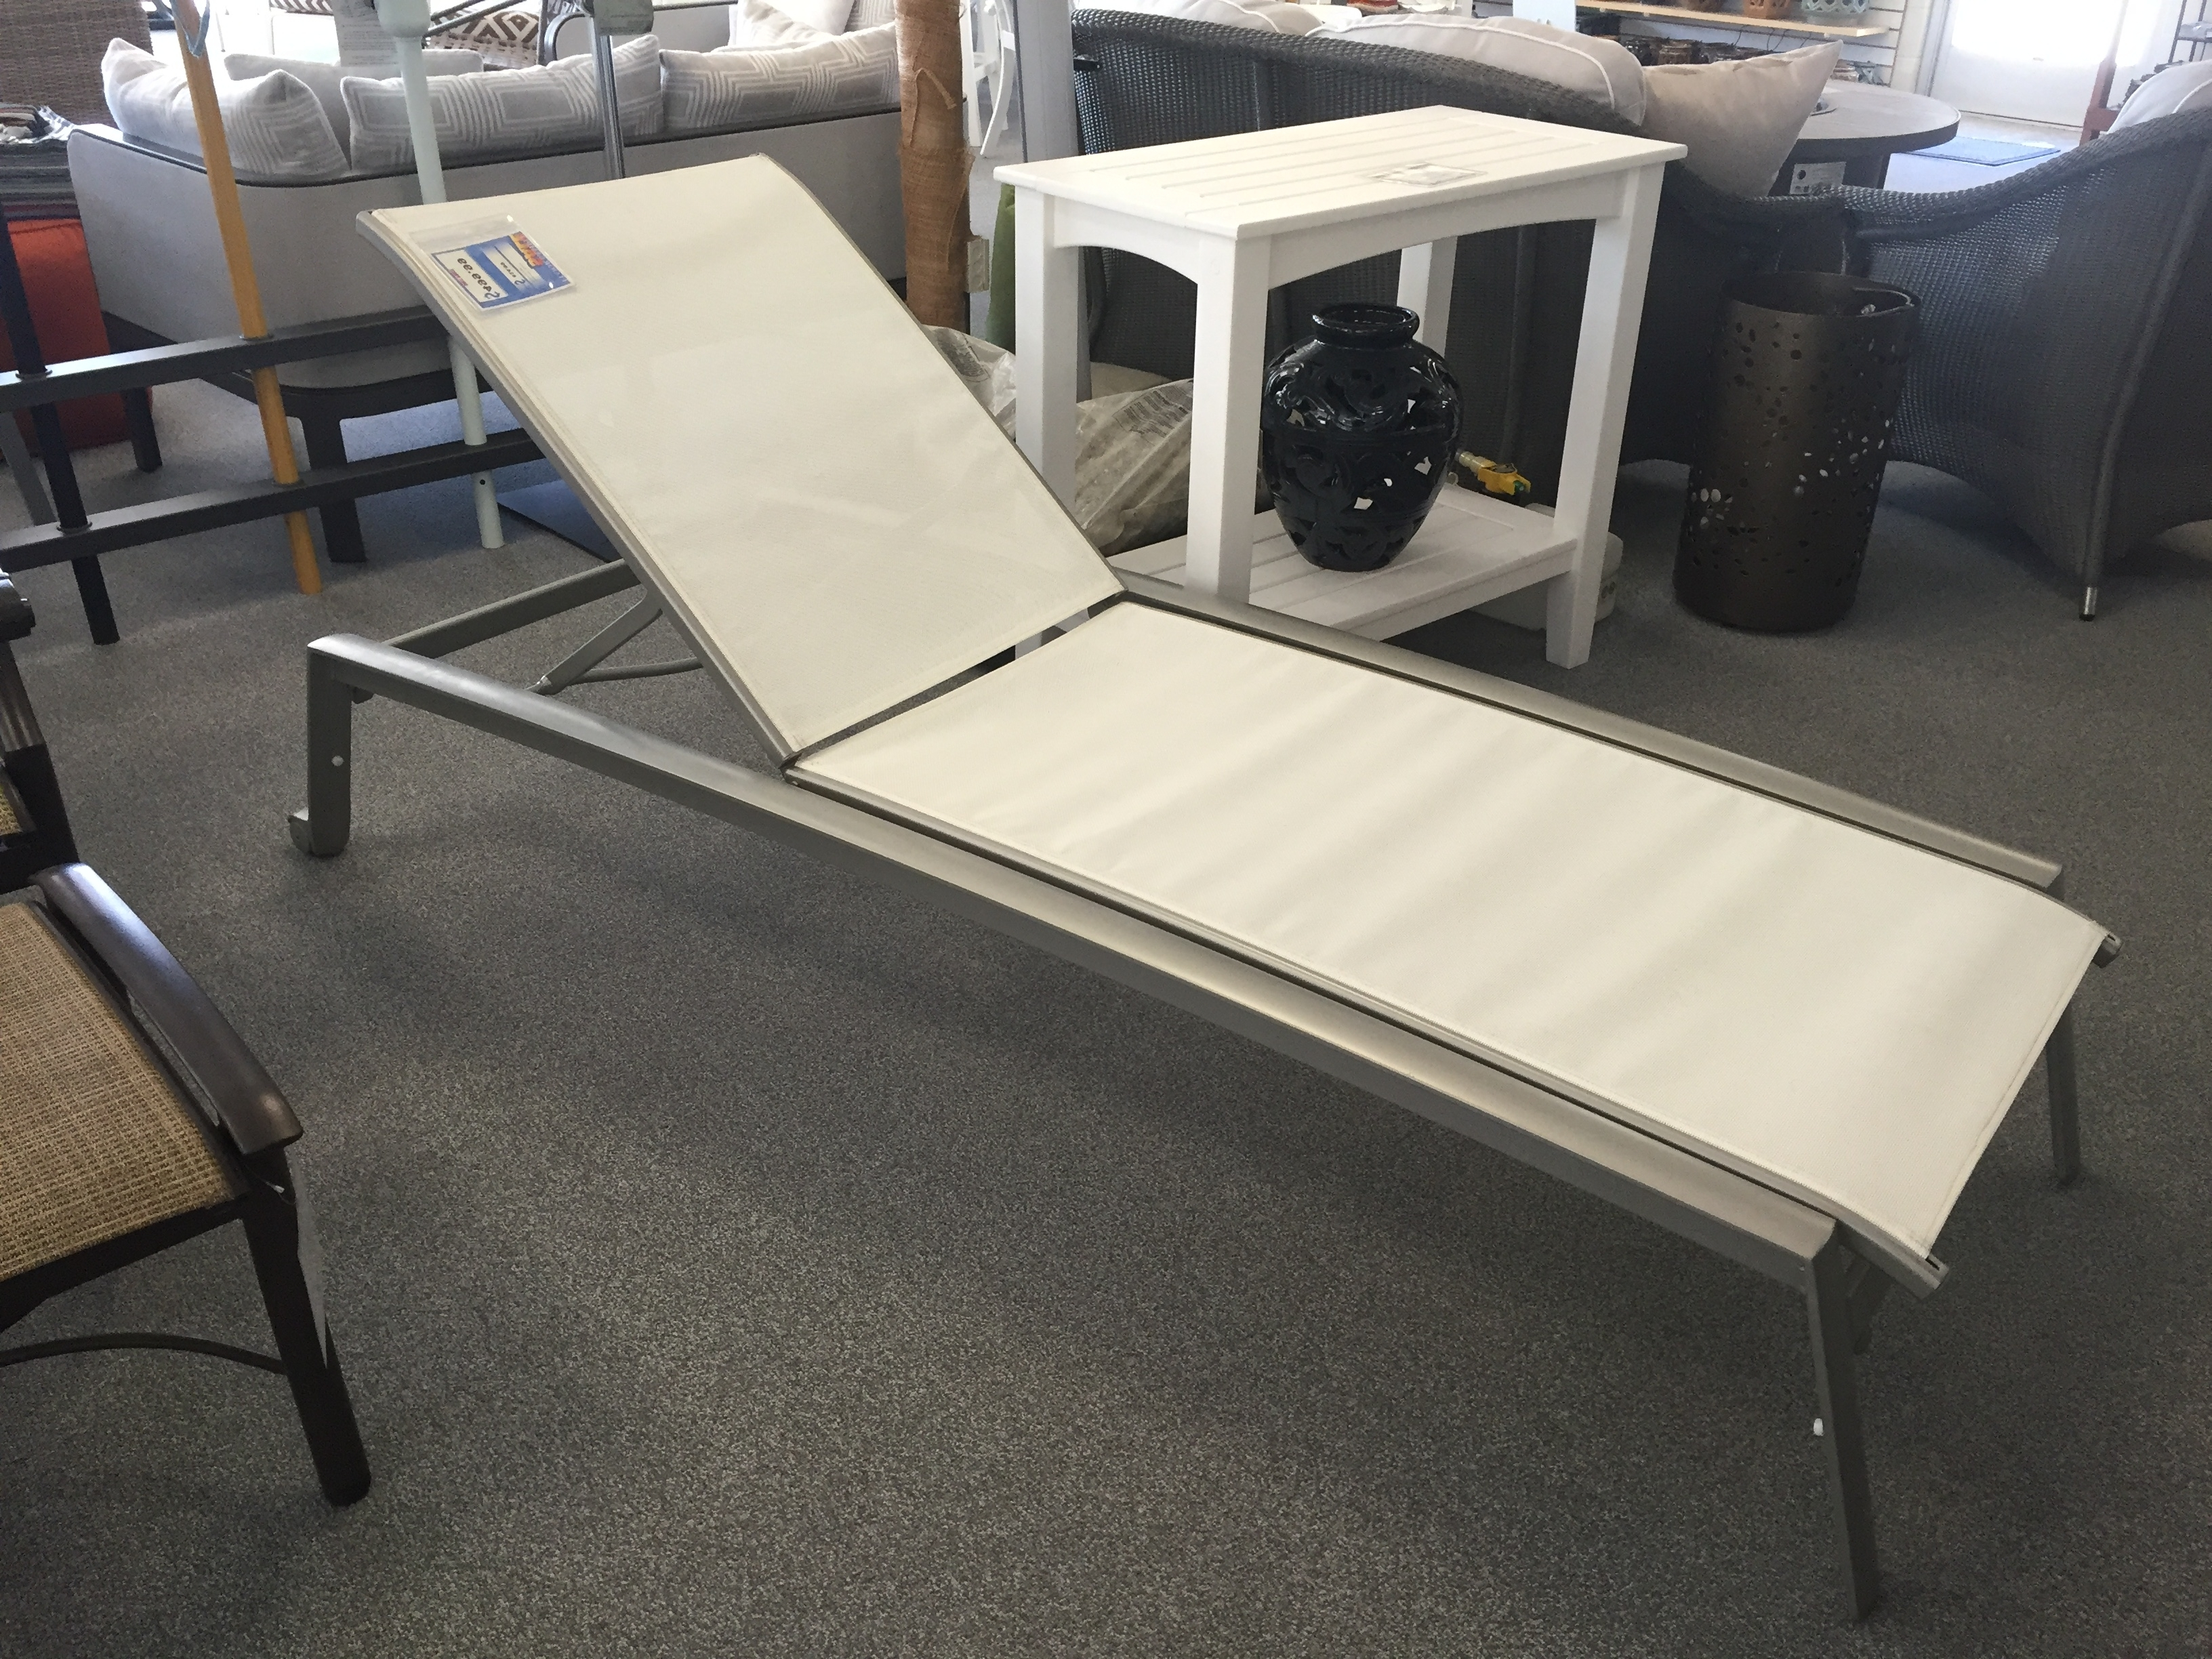 Tropitone Elance Chaise Lounge Universal Patio Furniture Studio For Latest Tropitone Chaise Lounges (View 11 of 15)